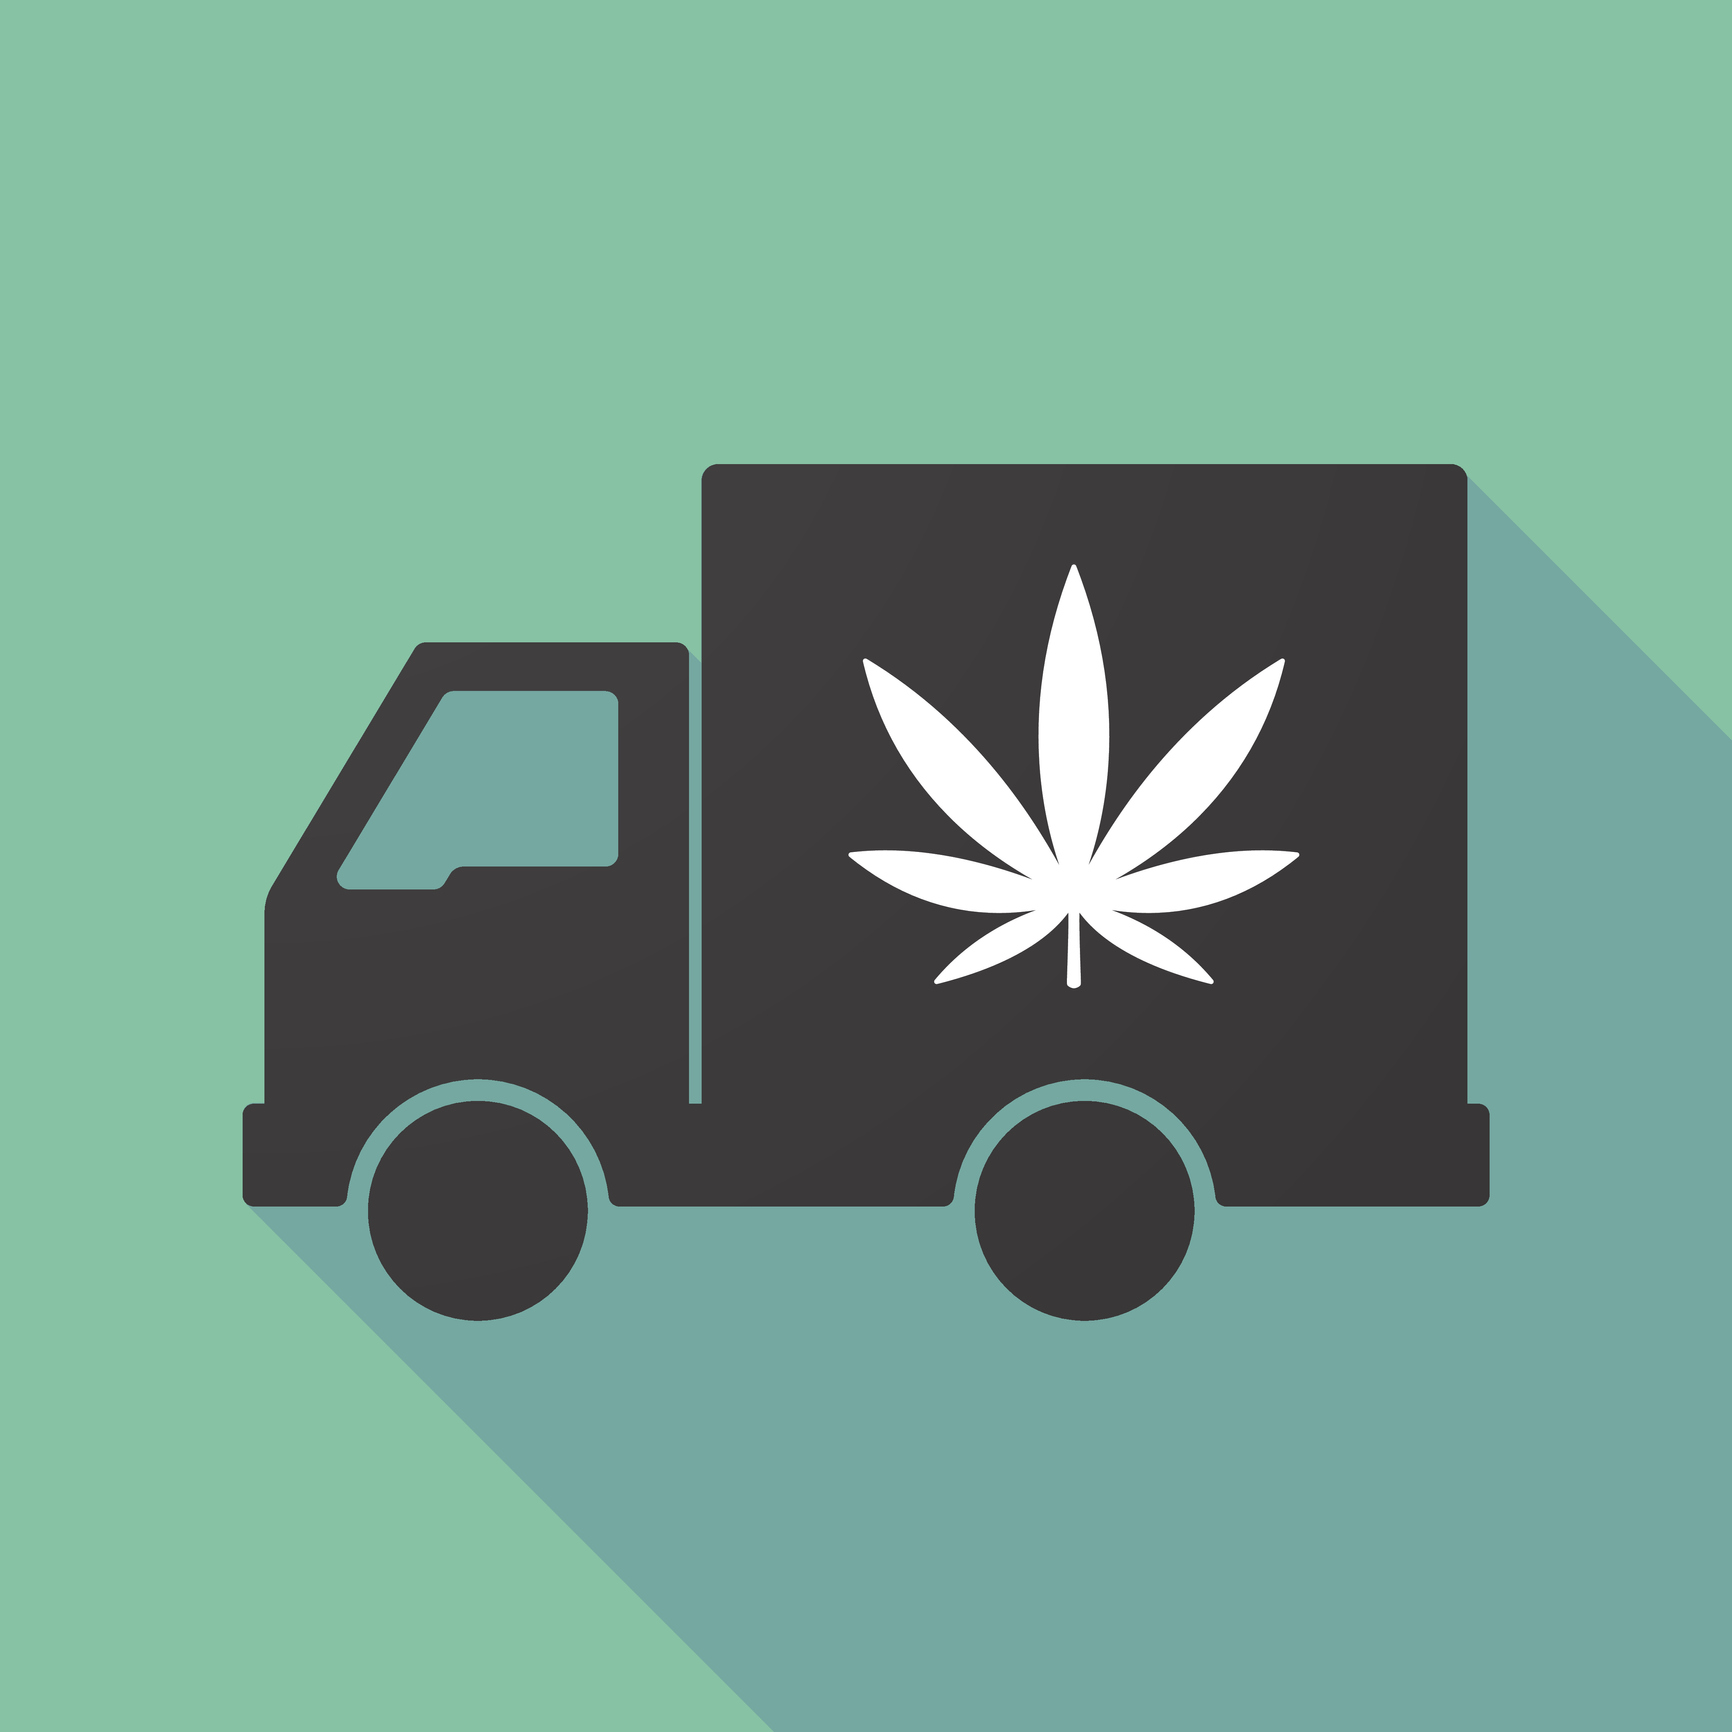 Silhouette of black truck with white marijuana leaf on it